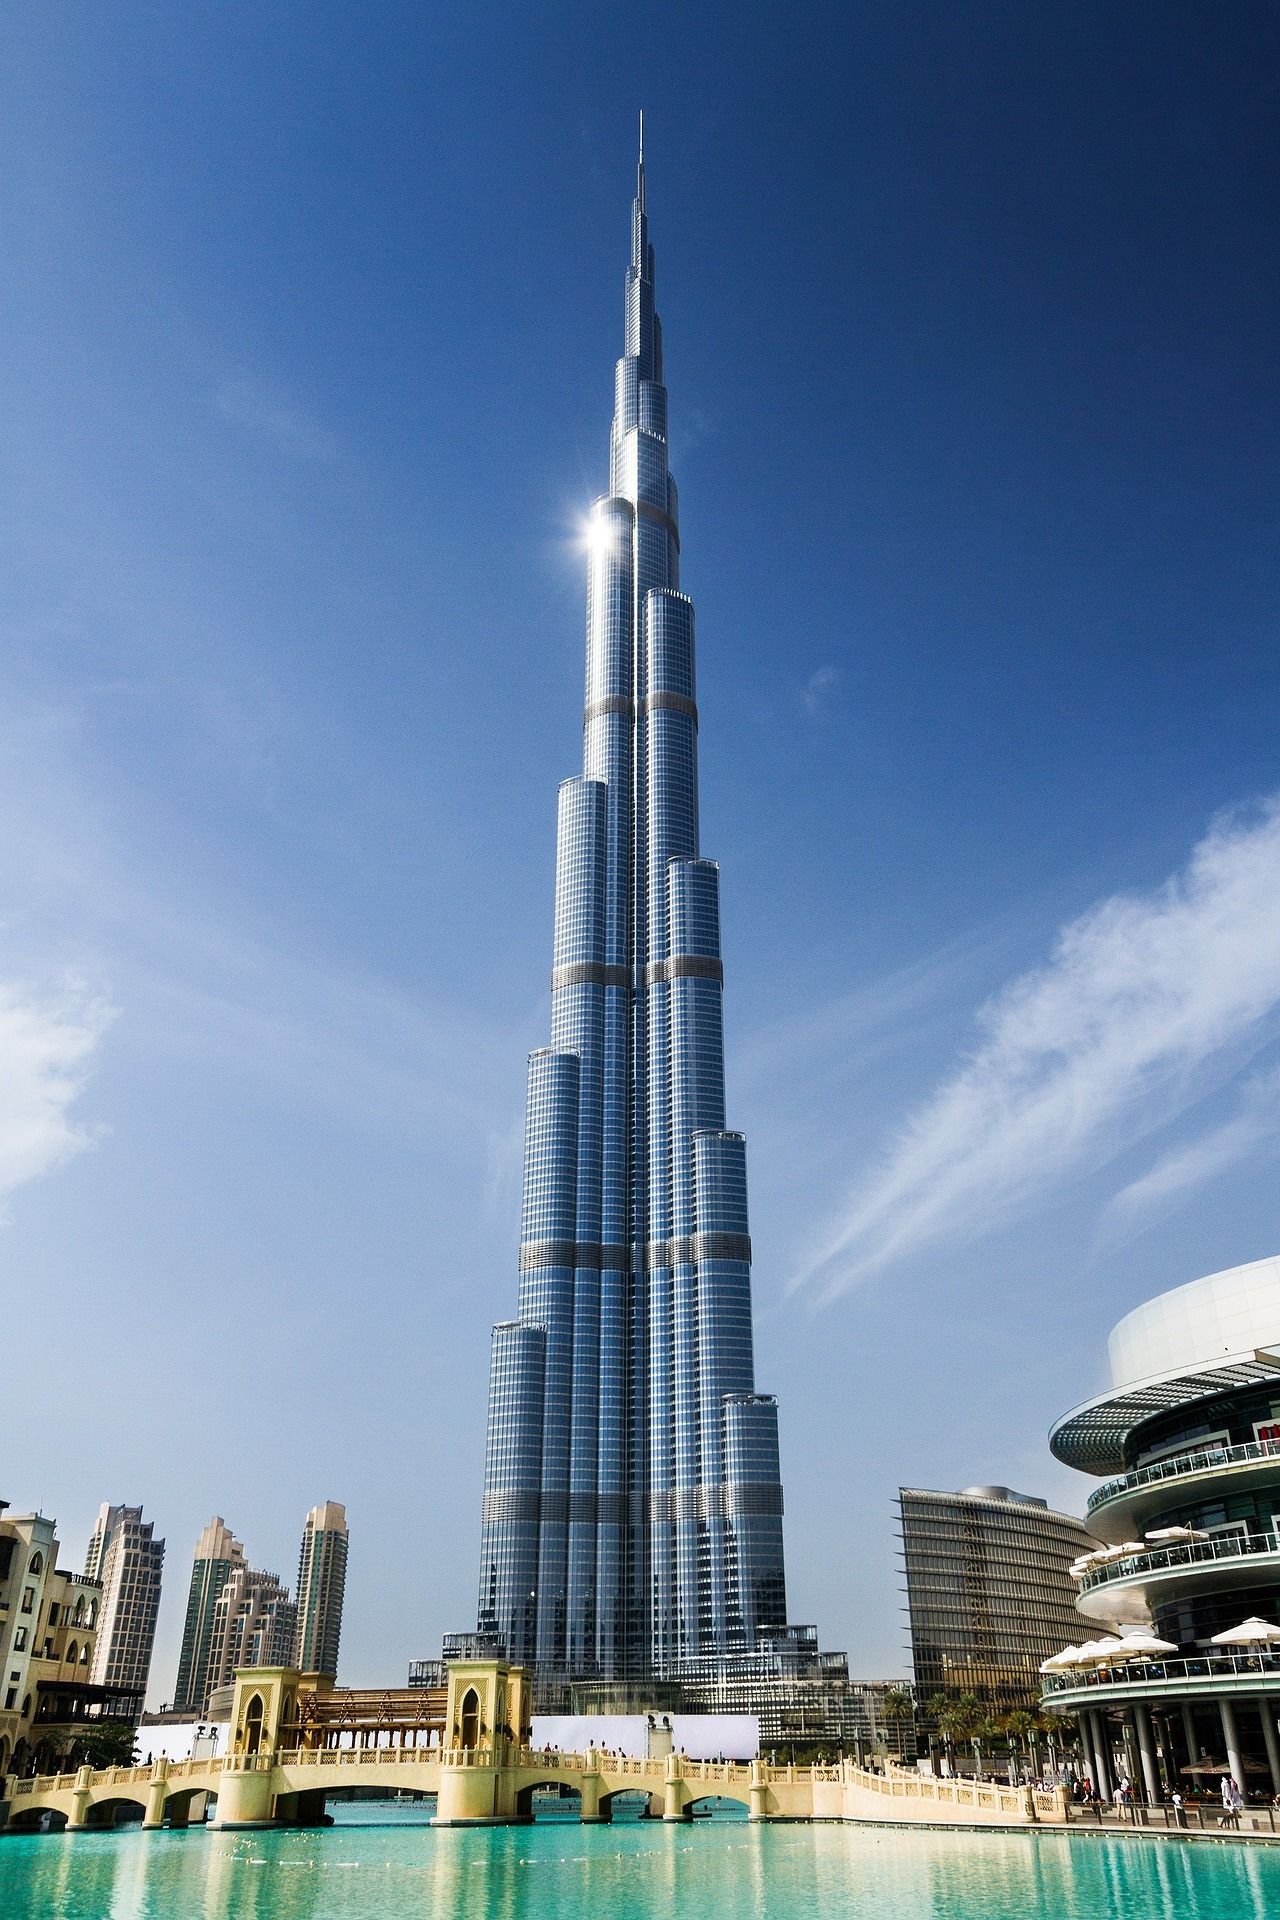 The Most Famous Place In Dubai Burj Khalifa